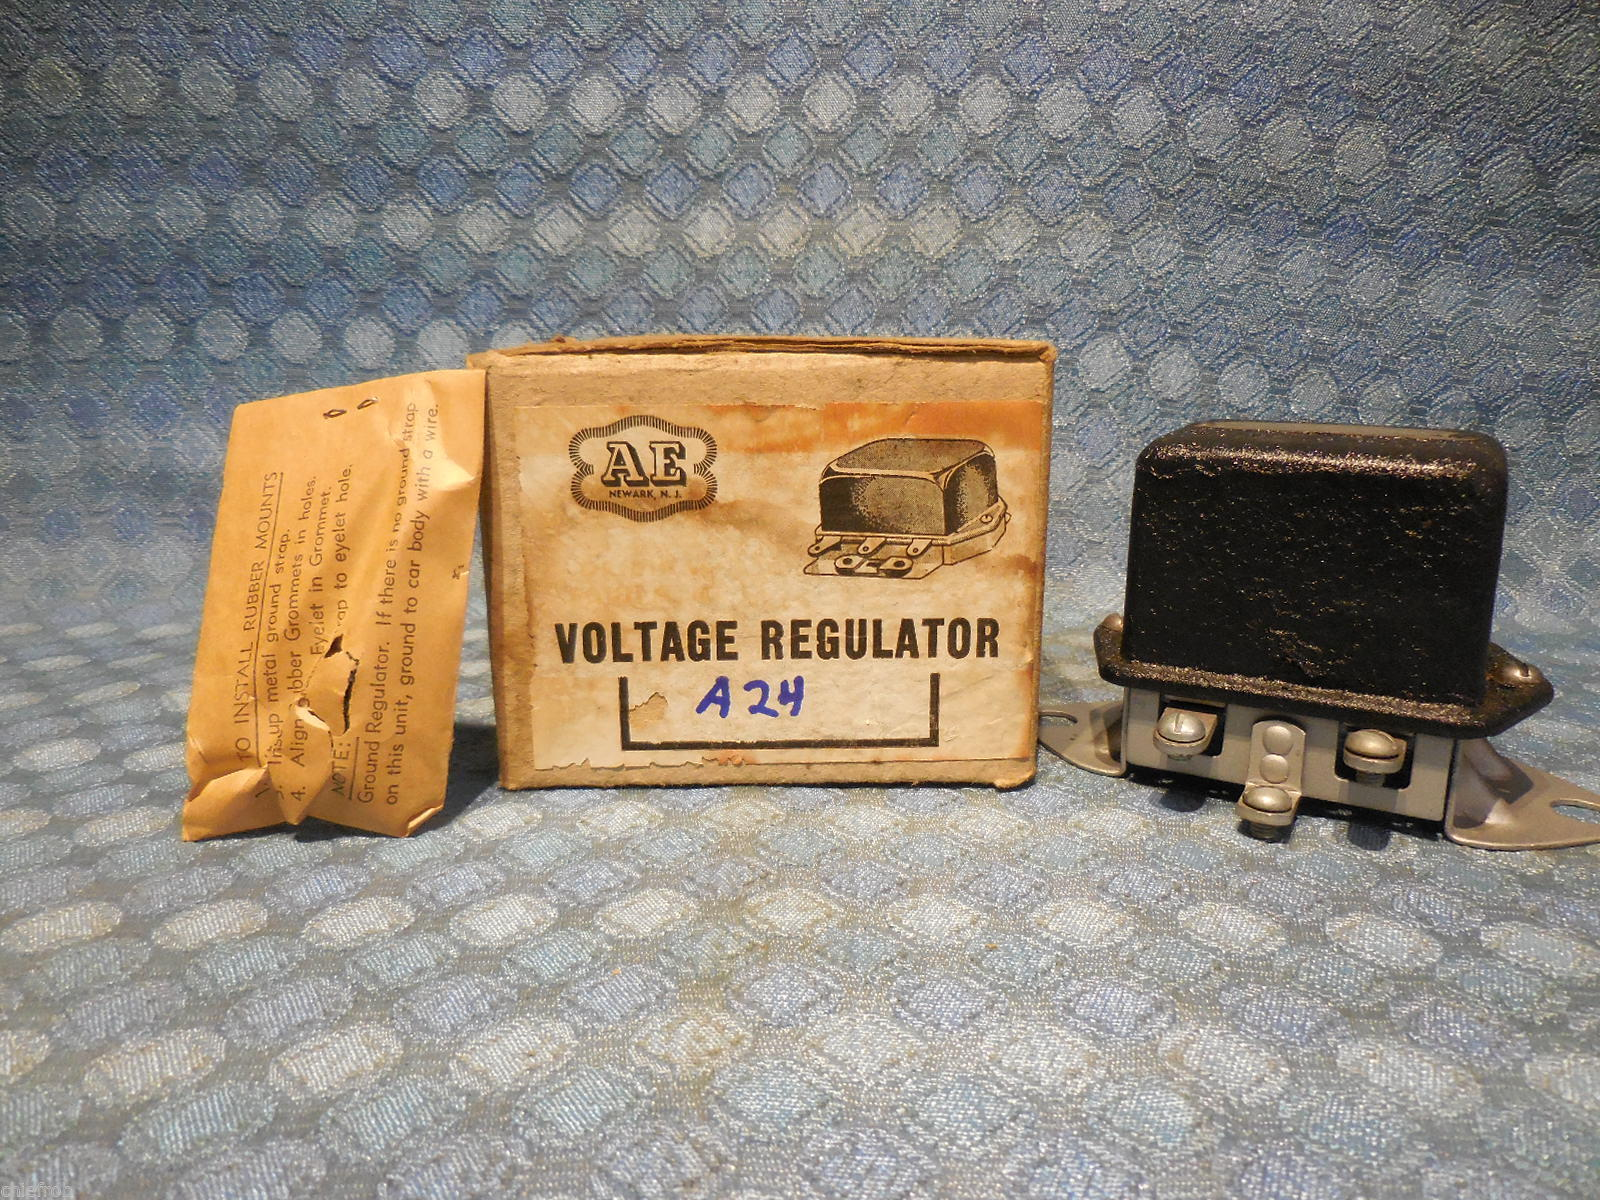 1939 Ford Voltage Regulator Wiring Electrical Diagrams 1938 Diagram Dodge Plymouth Fargo Nors Vrd 4002 B Header Panel